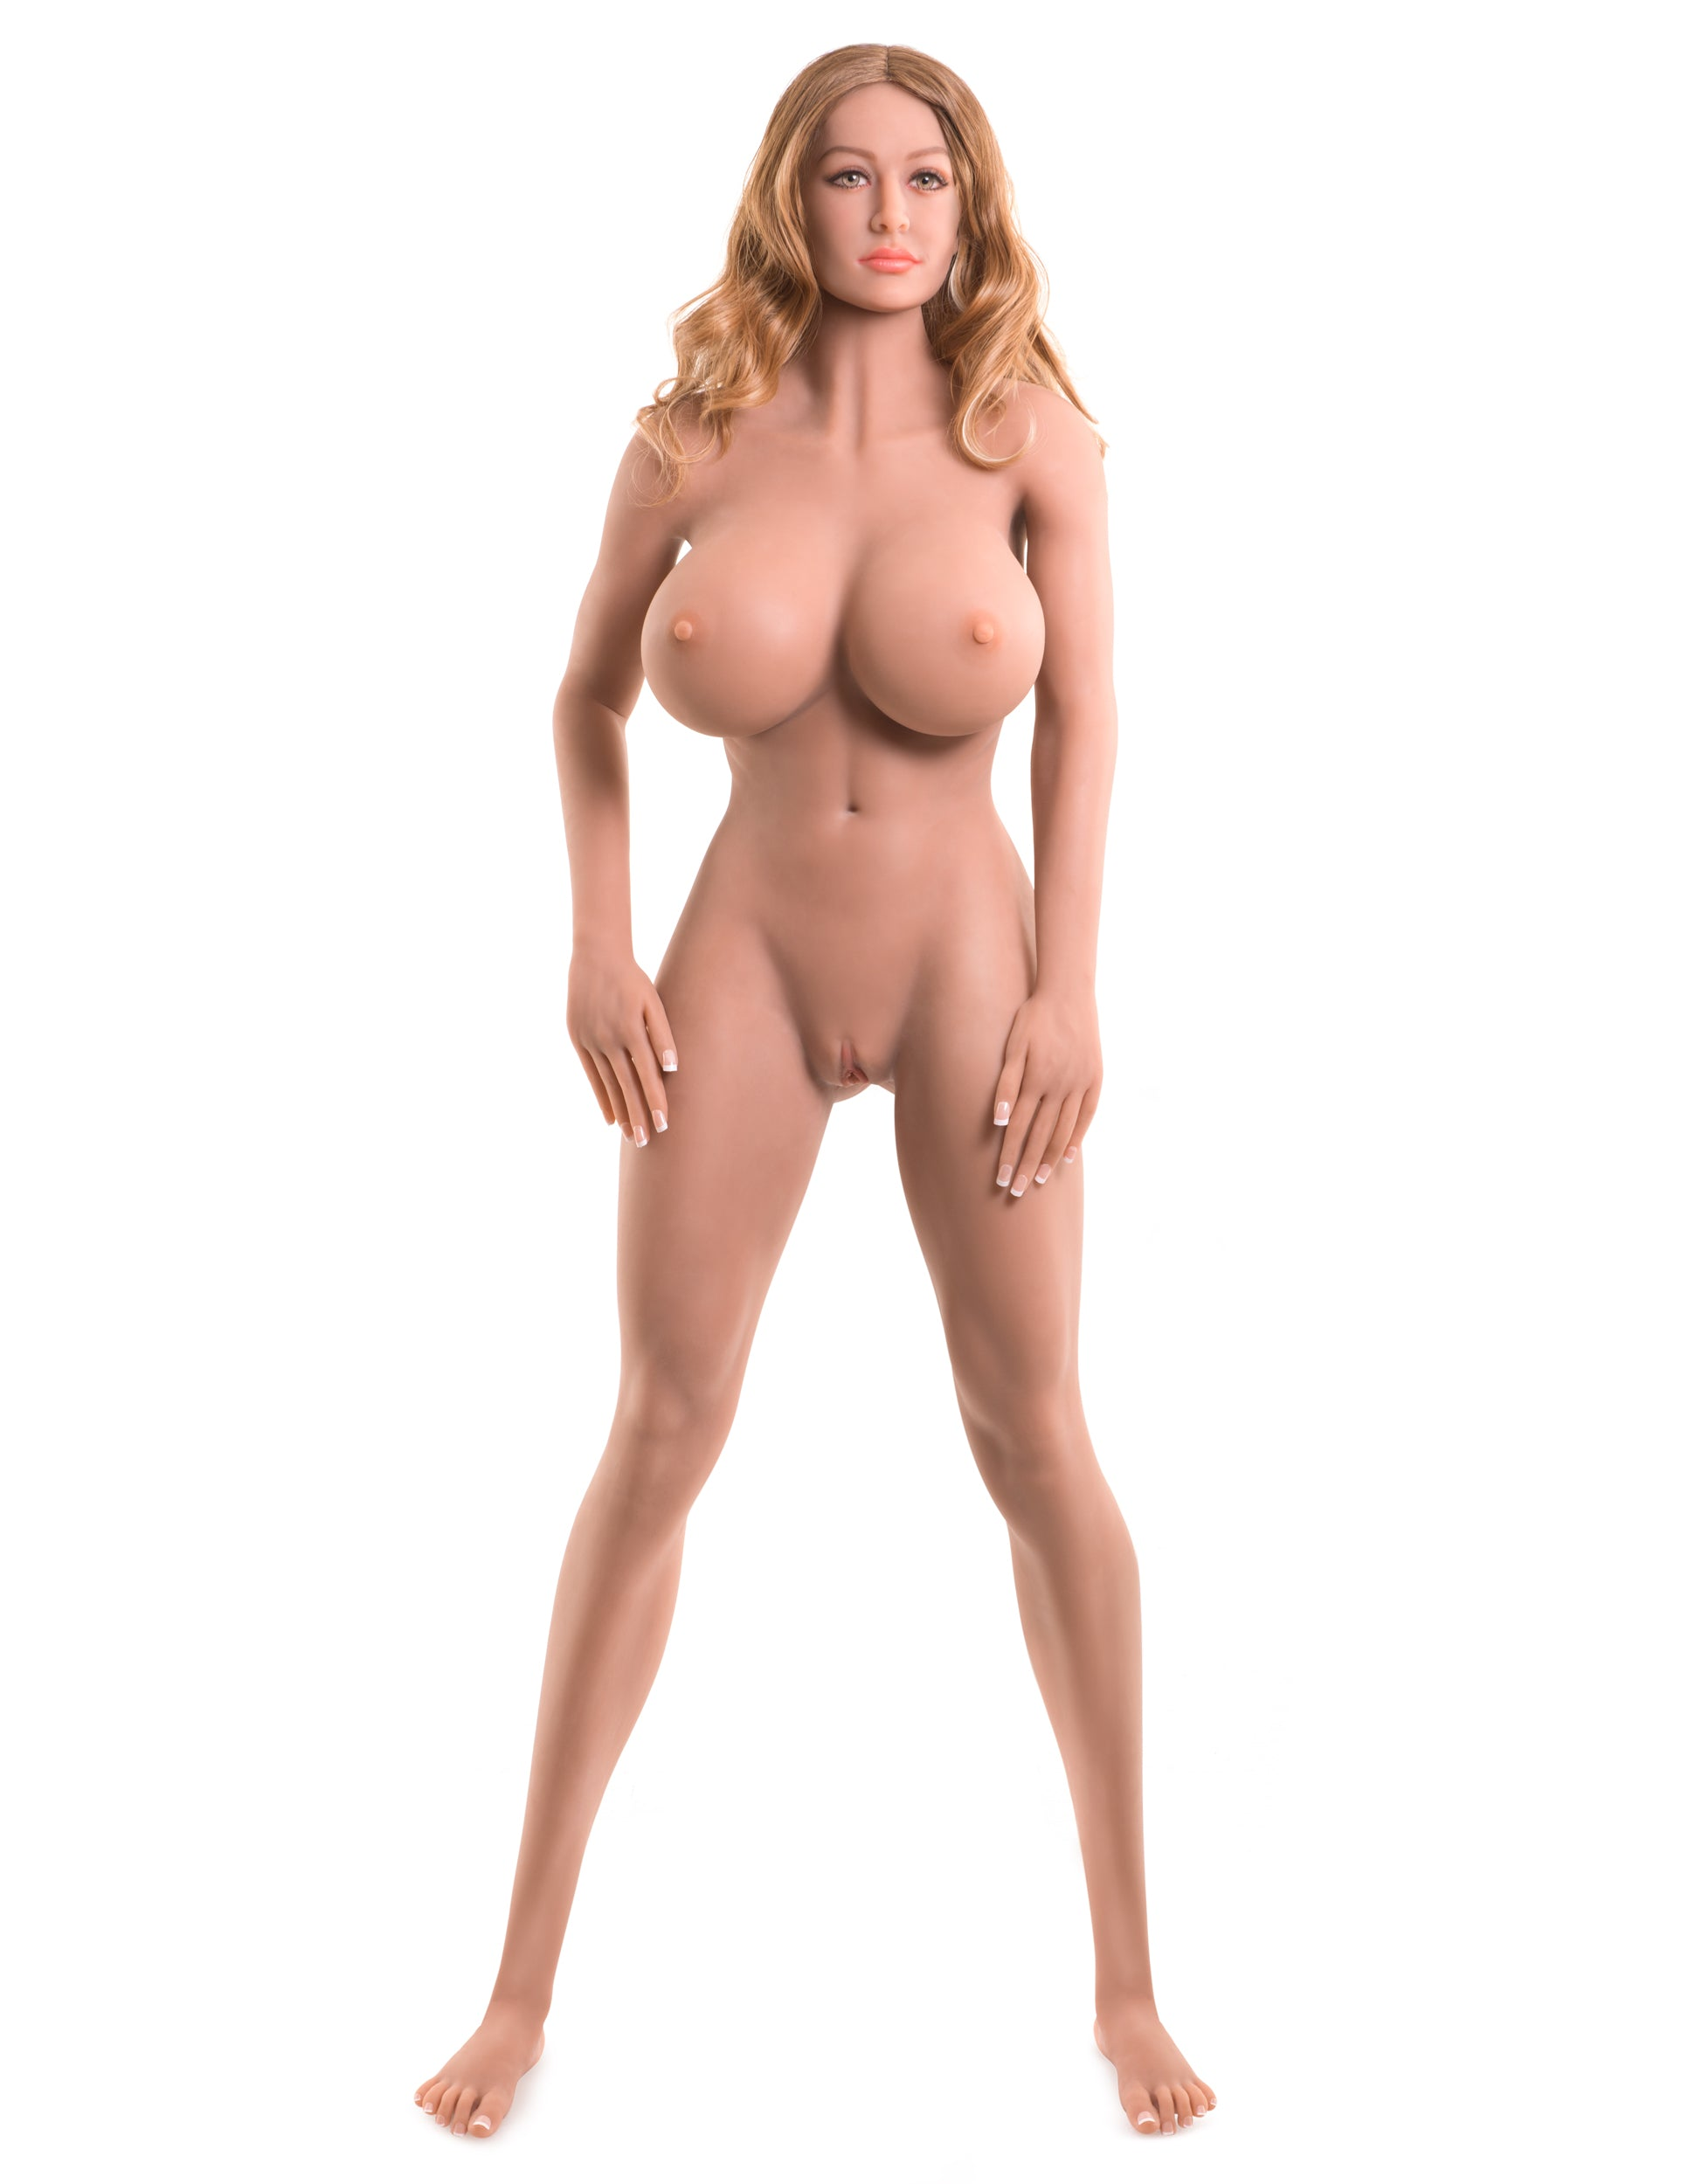 Ultimate Fantasy Dolls - Bianca standing nude in a full frontal beauty shot